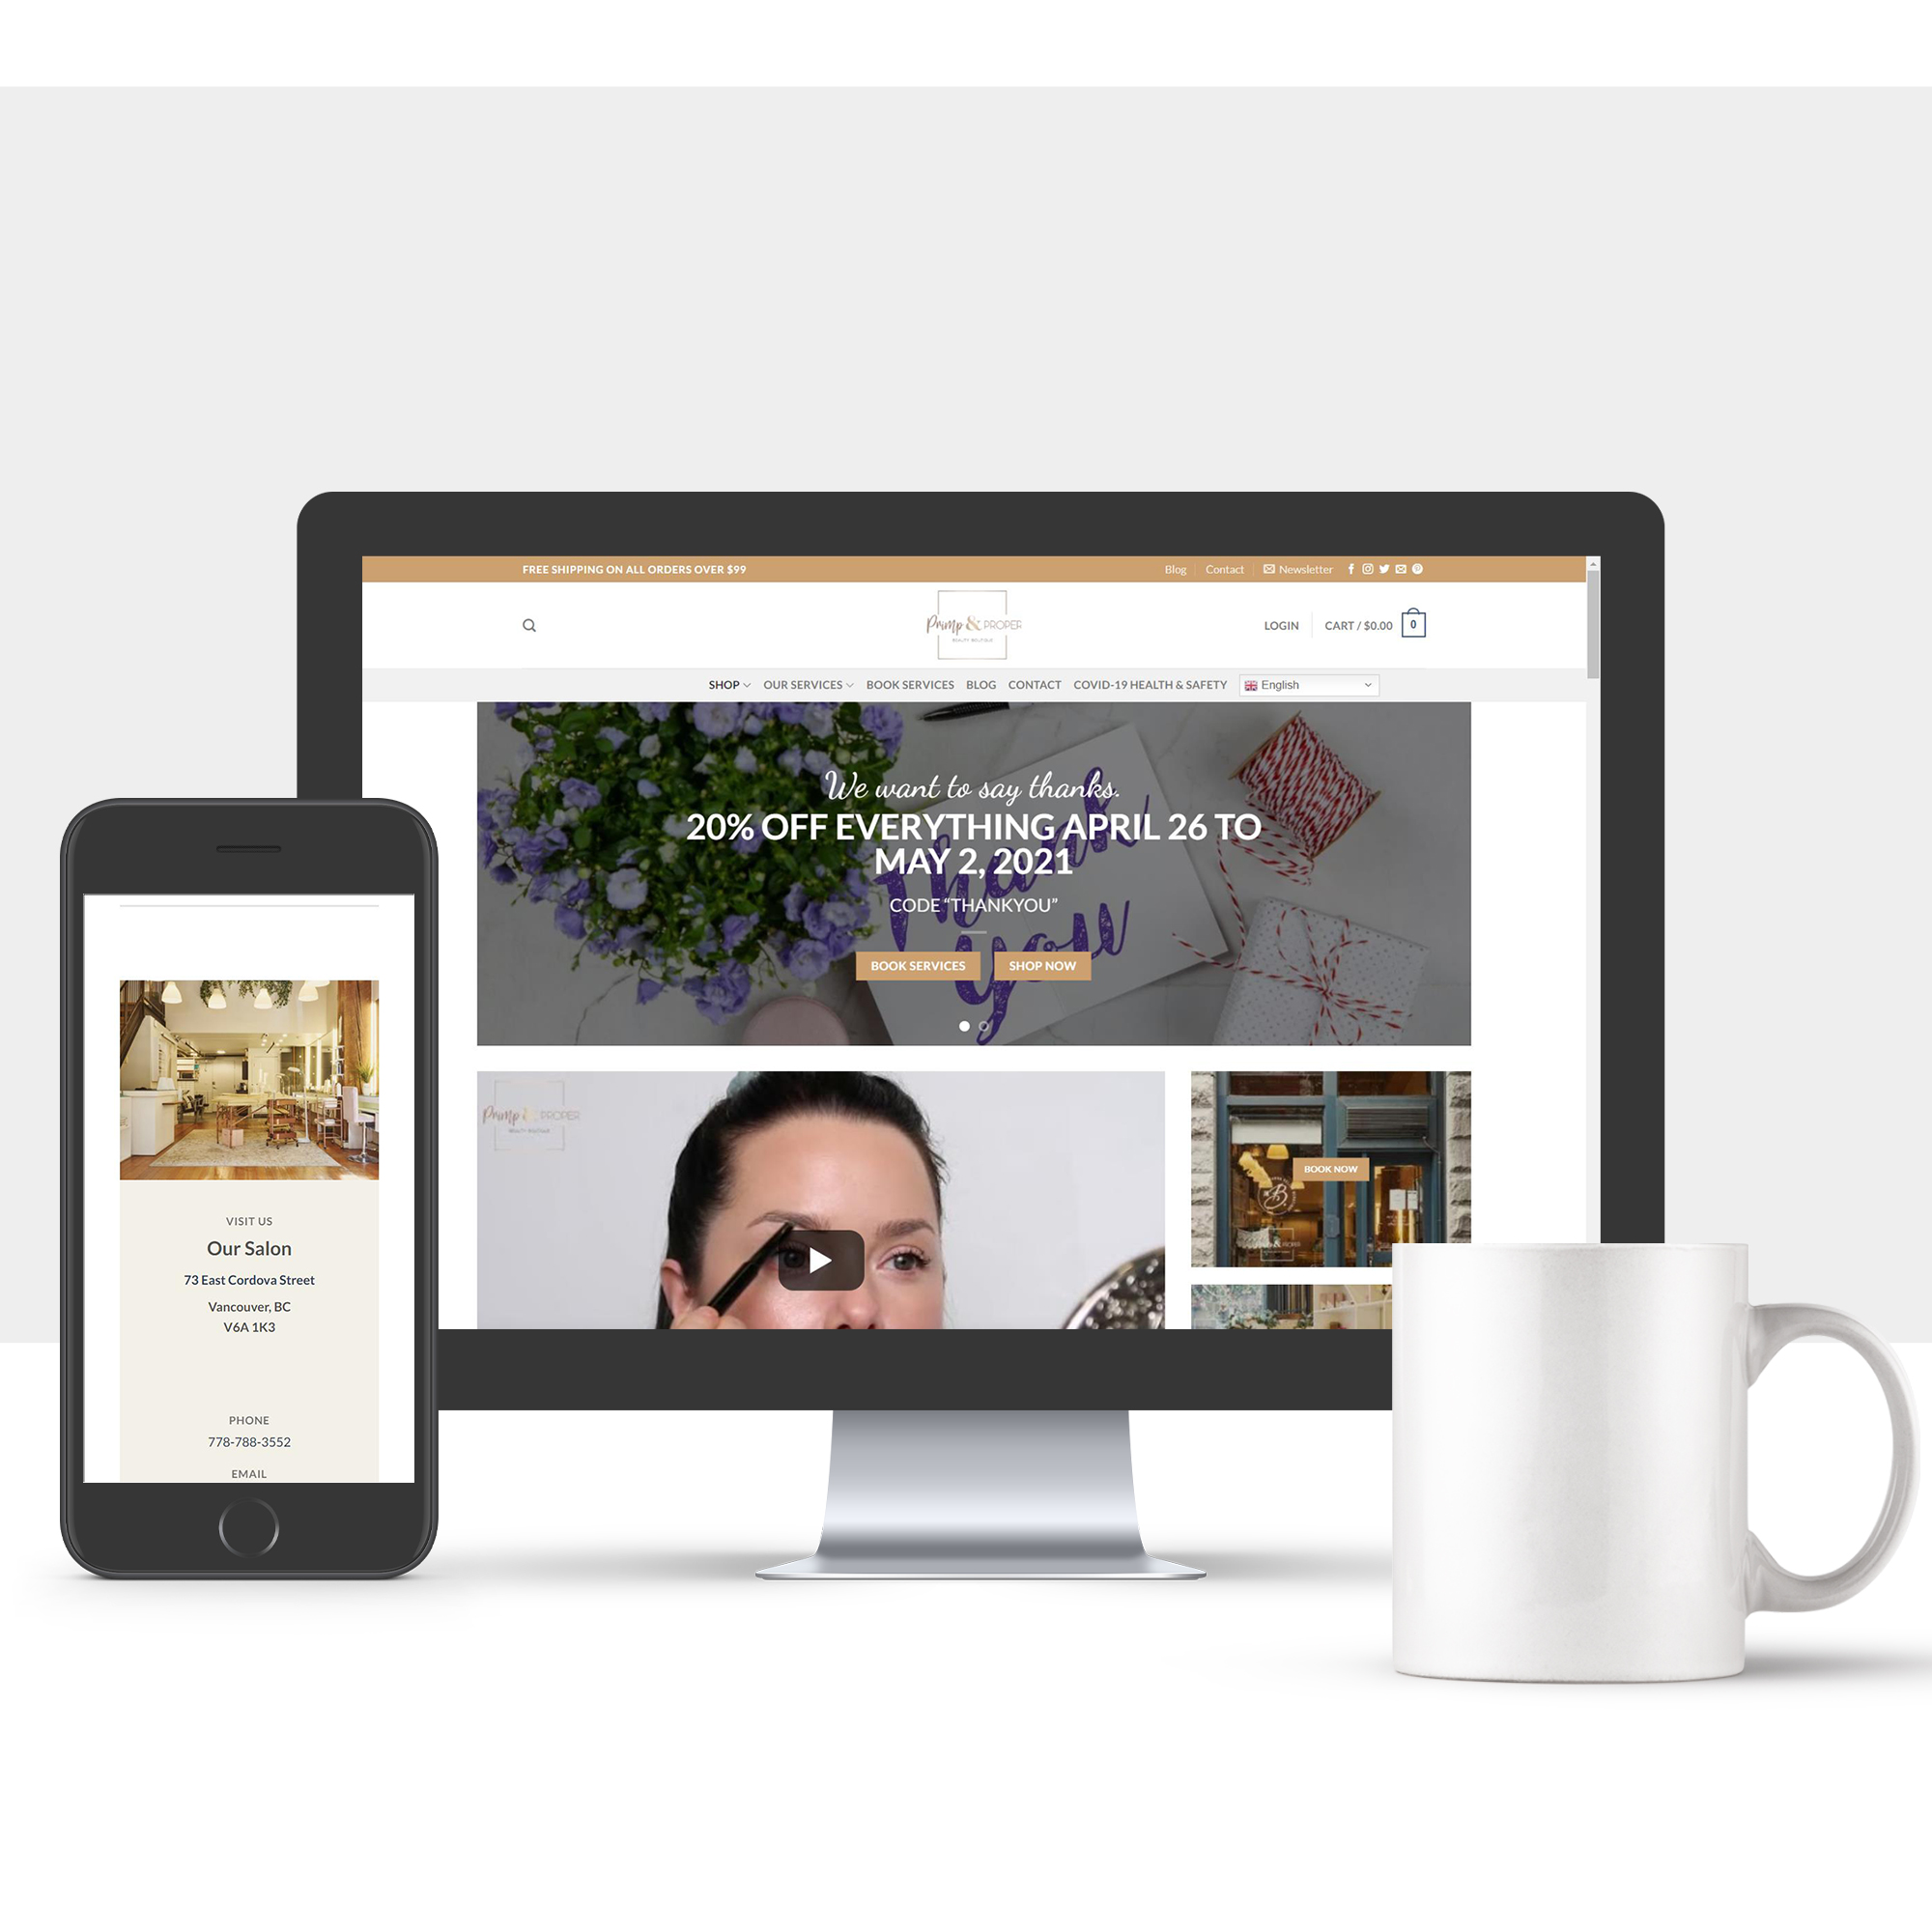 a mobile phone and laptop showing the website is mobile friendly